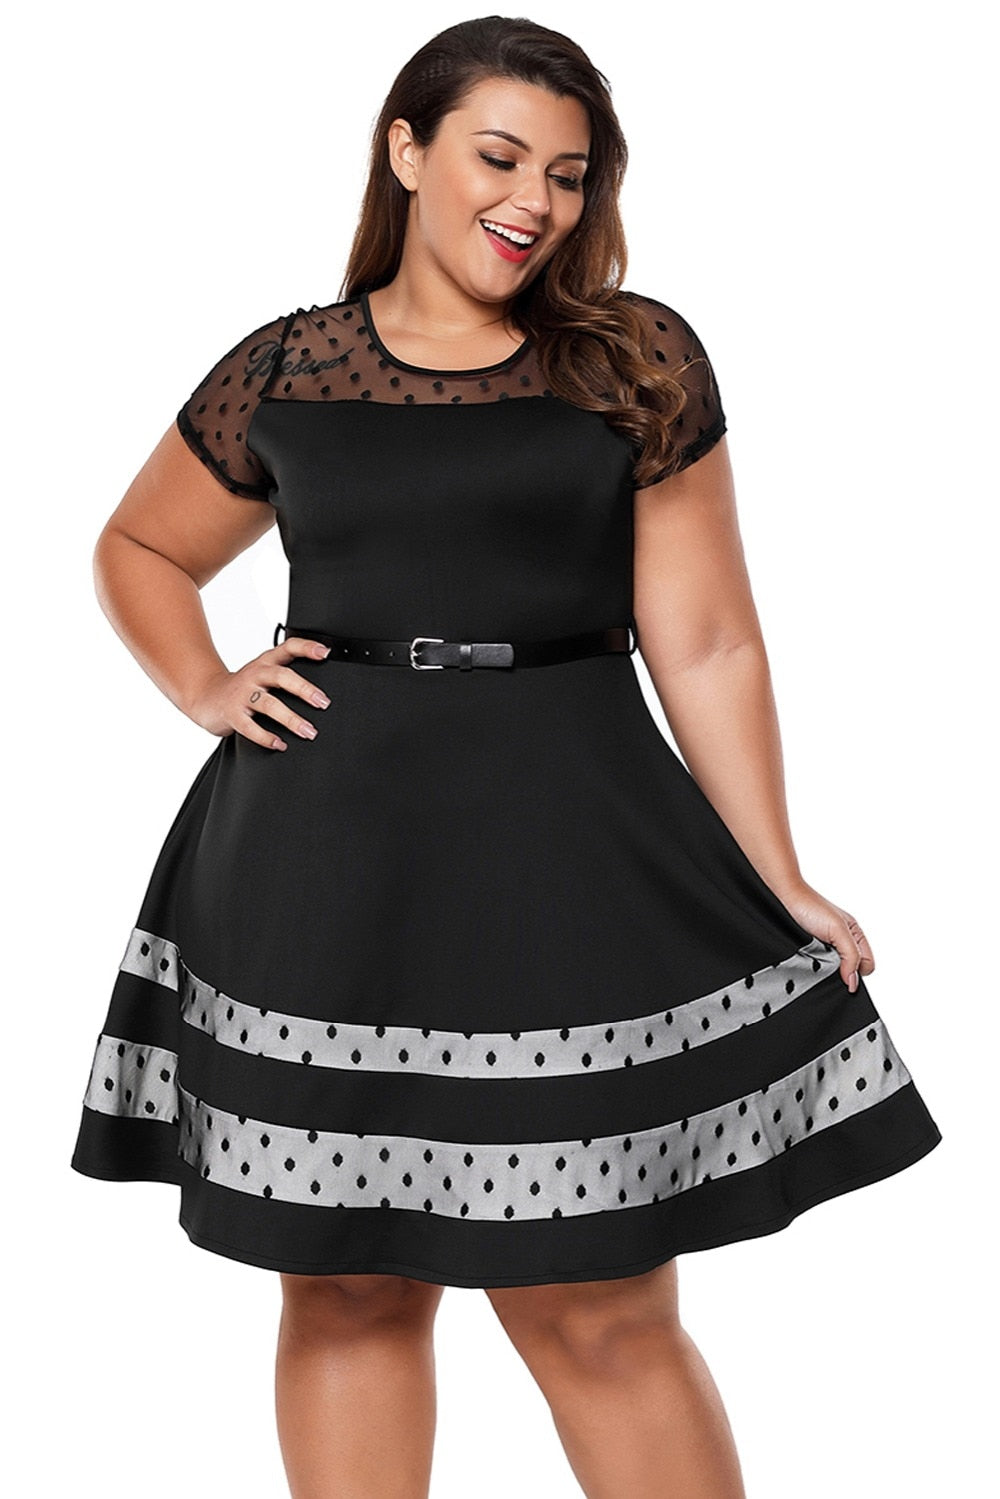 Mini Cut Swing Style Plus Size Dress